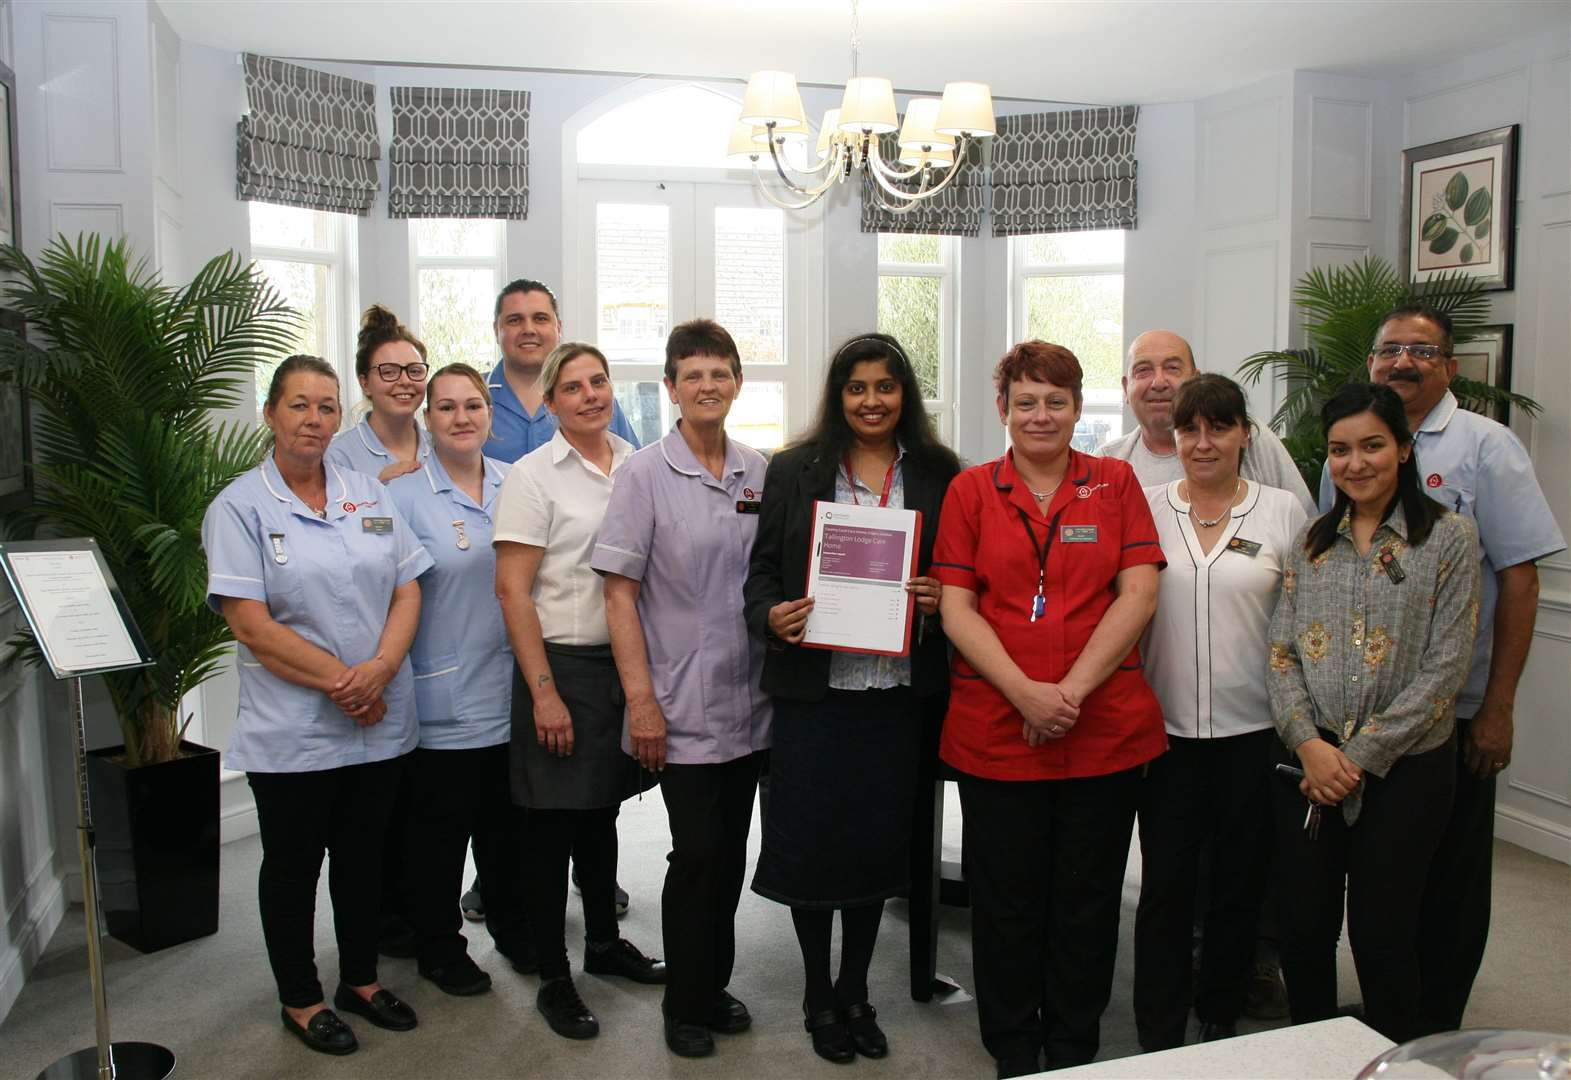 These Tallington Lodge Care Home staff have got cause for celebration.